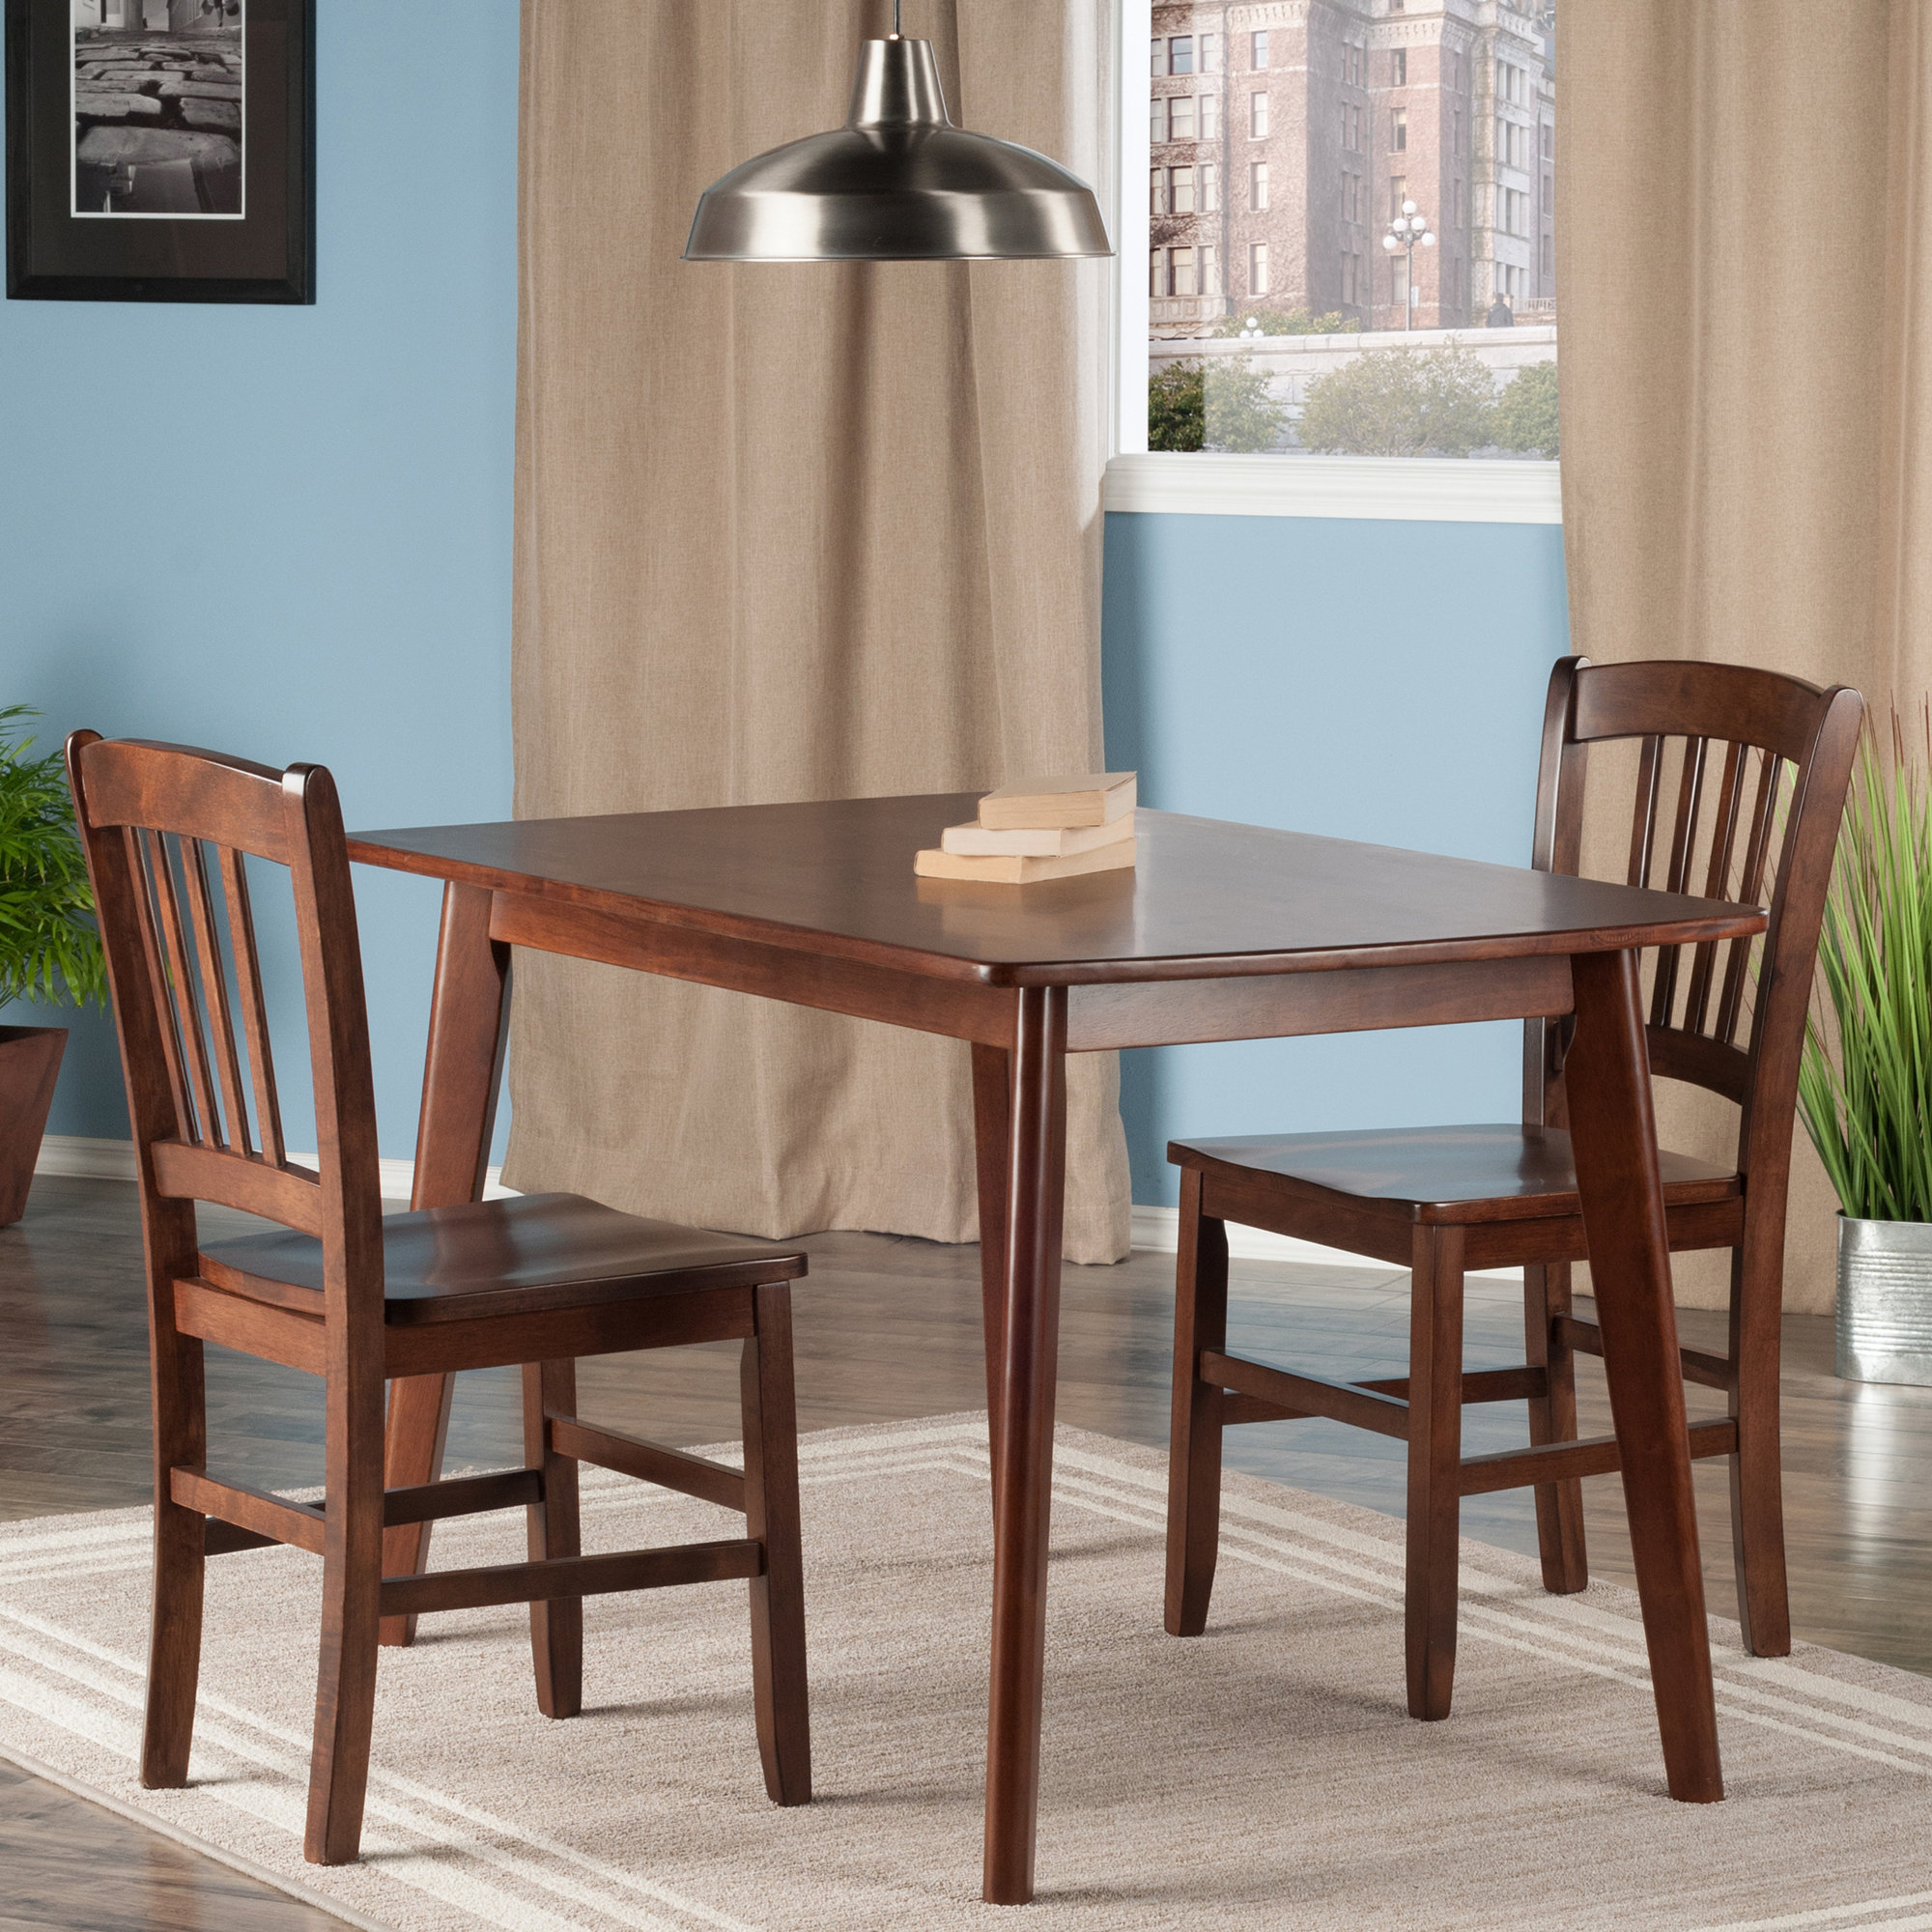 Winston Porter Guynn 3 Piece Solid Wood Dining Set Wnst1156 In Popular Penelope 3 Piece Counter Height Wood Dining Sets (View 16 of 25)